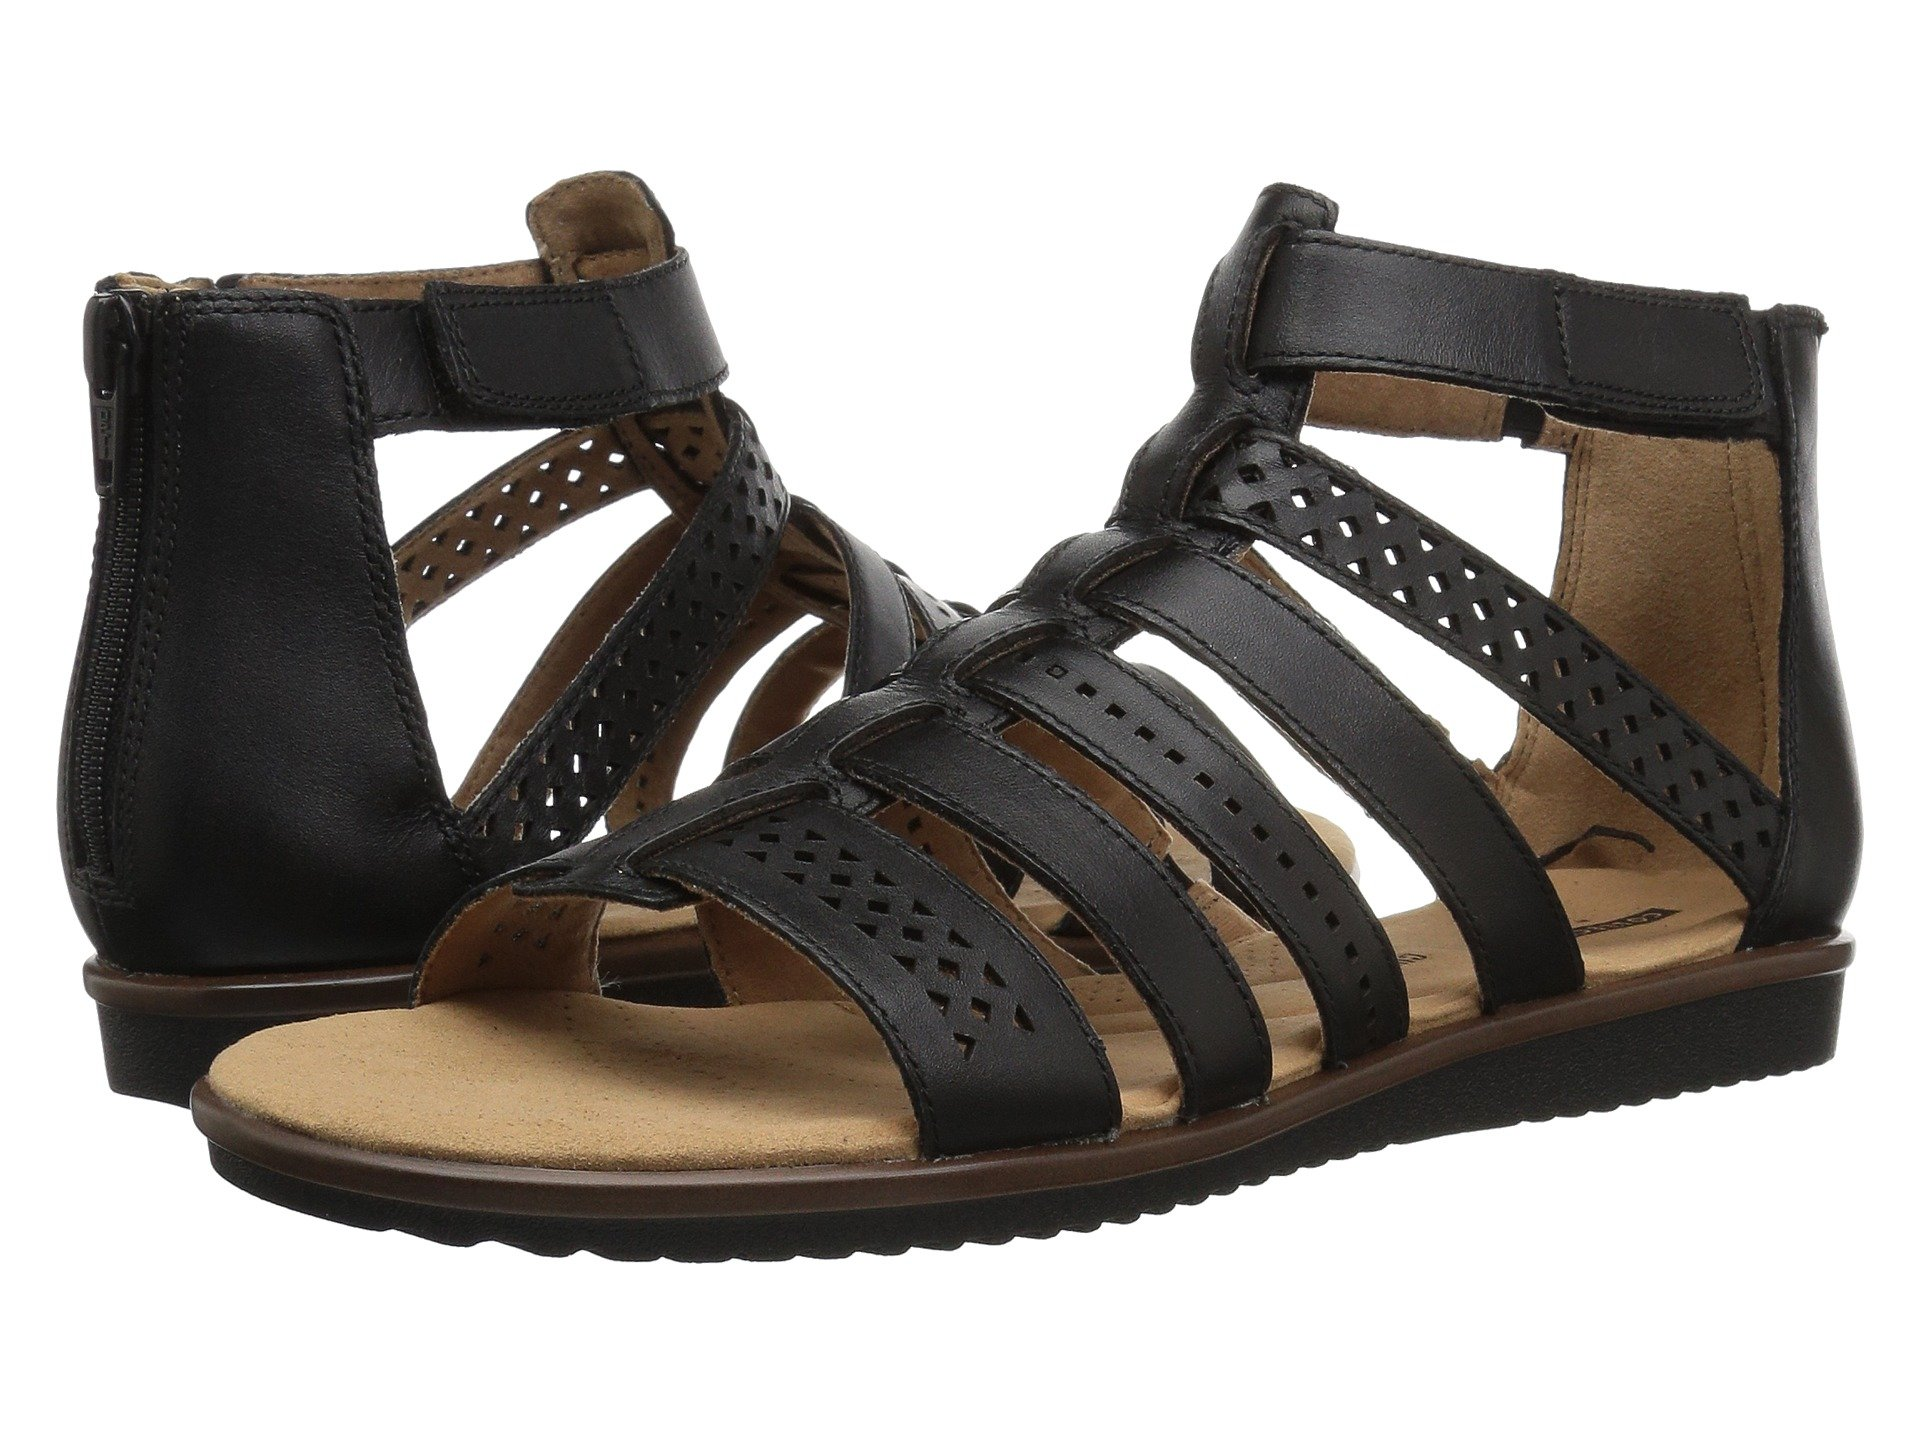 31366fdcded7 Women s Clarks Sandals + FREE SHIPPING